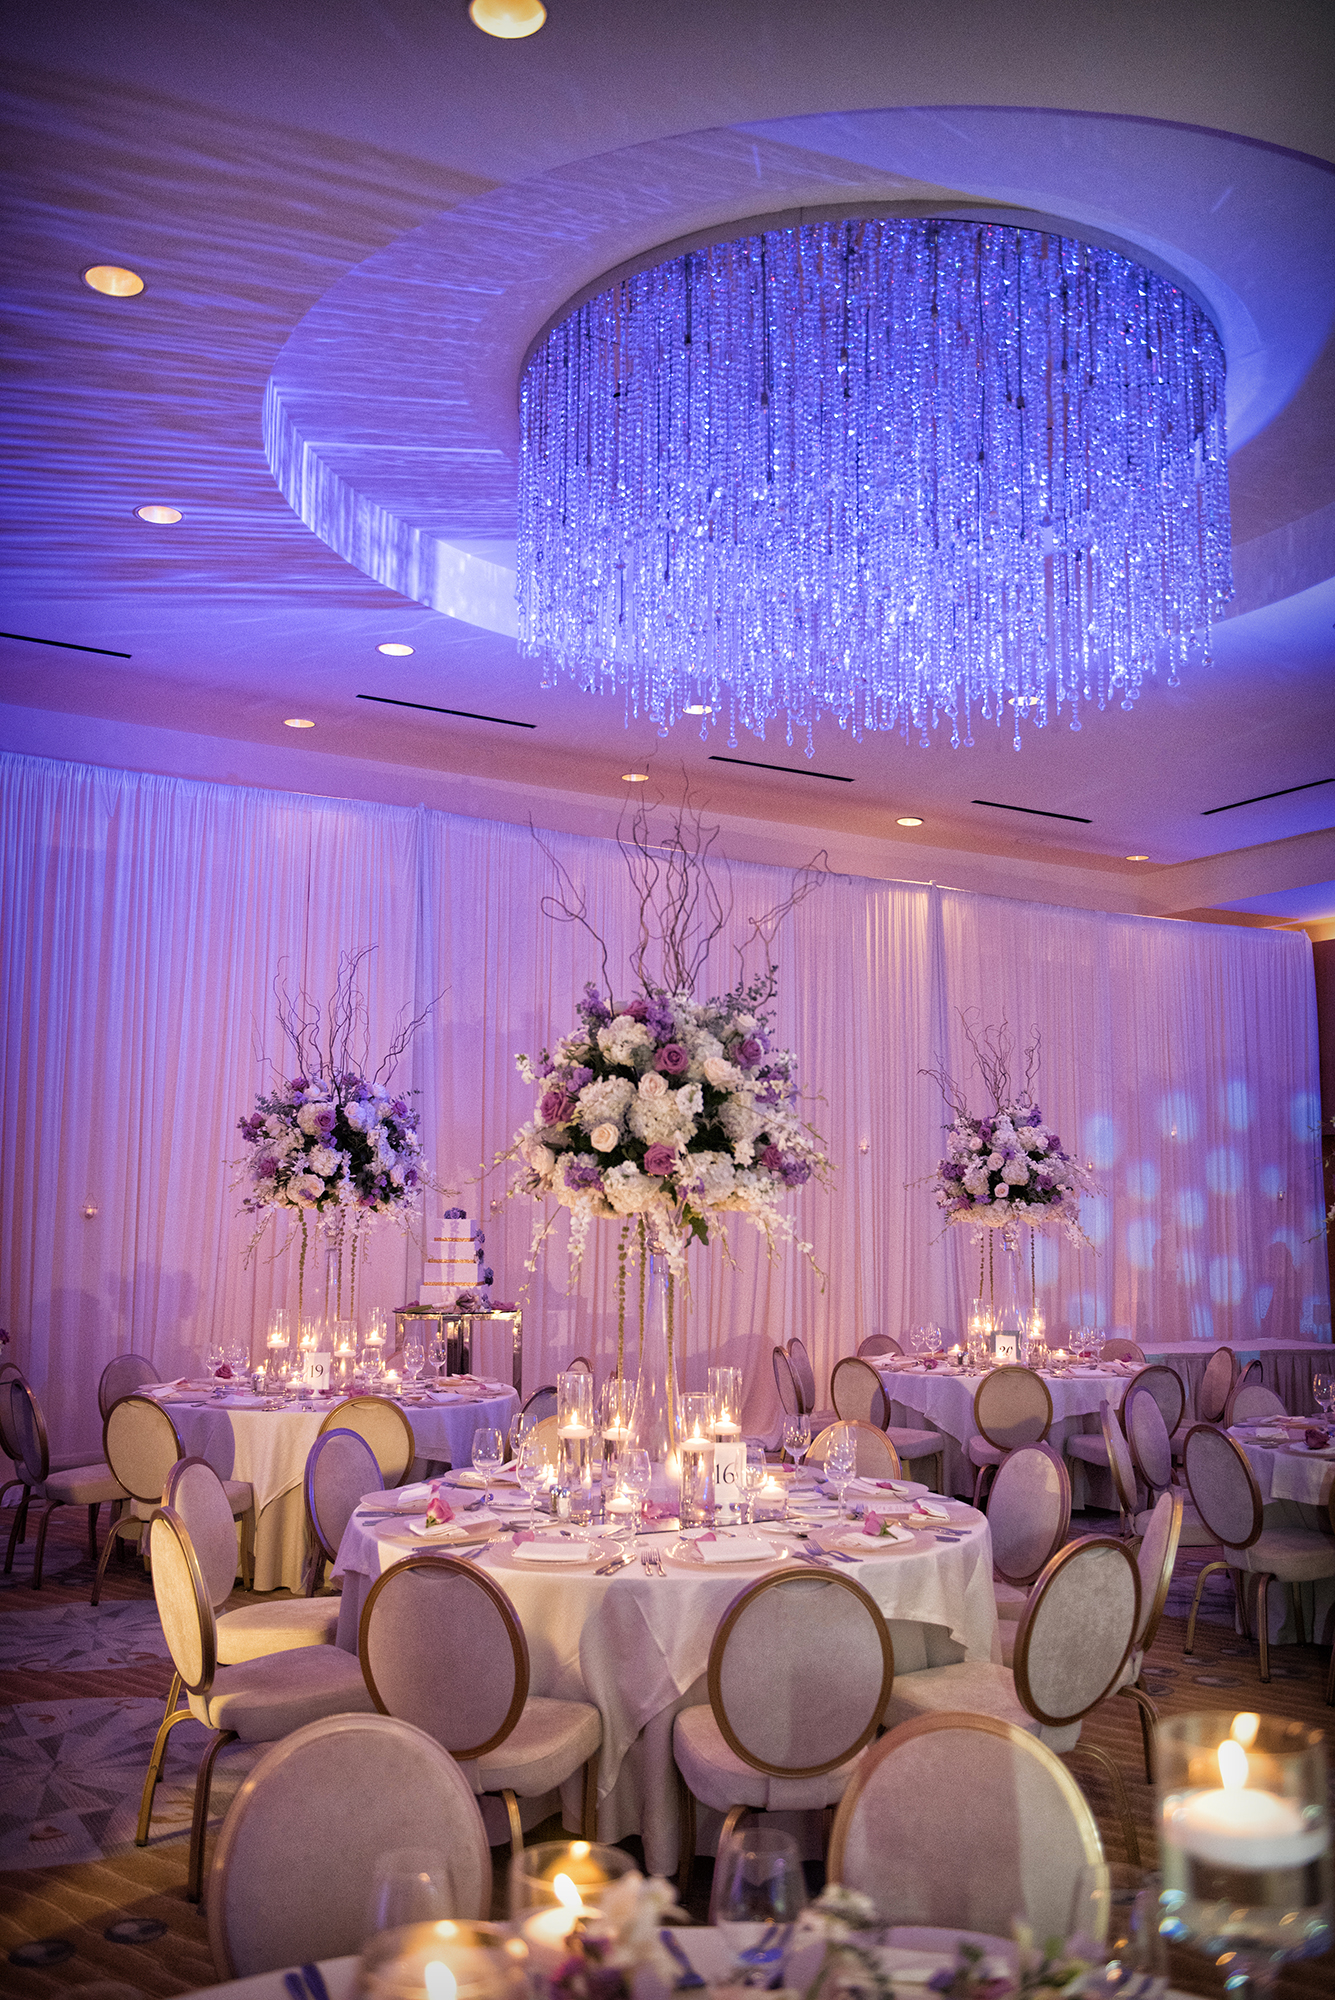 ritz-carlton-florida-wedding-jeffkolodny-photography-30